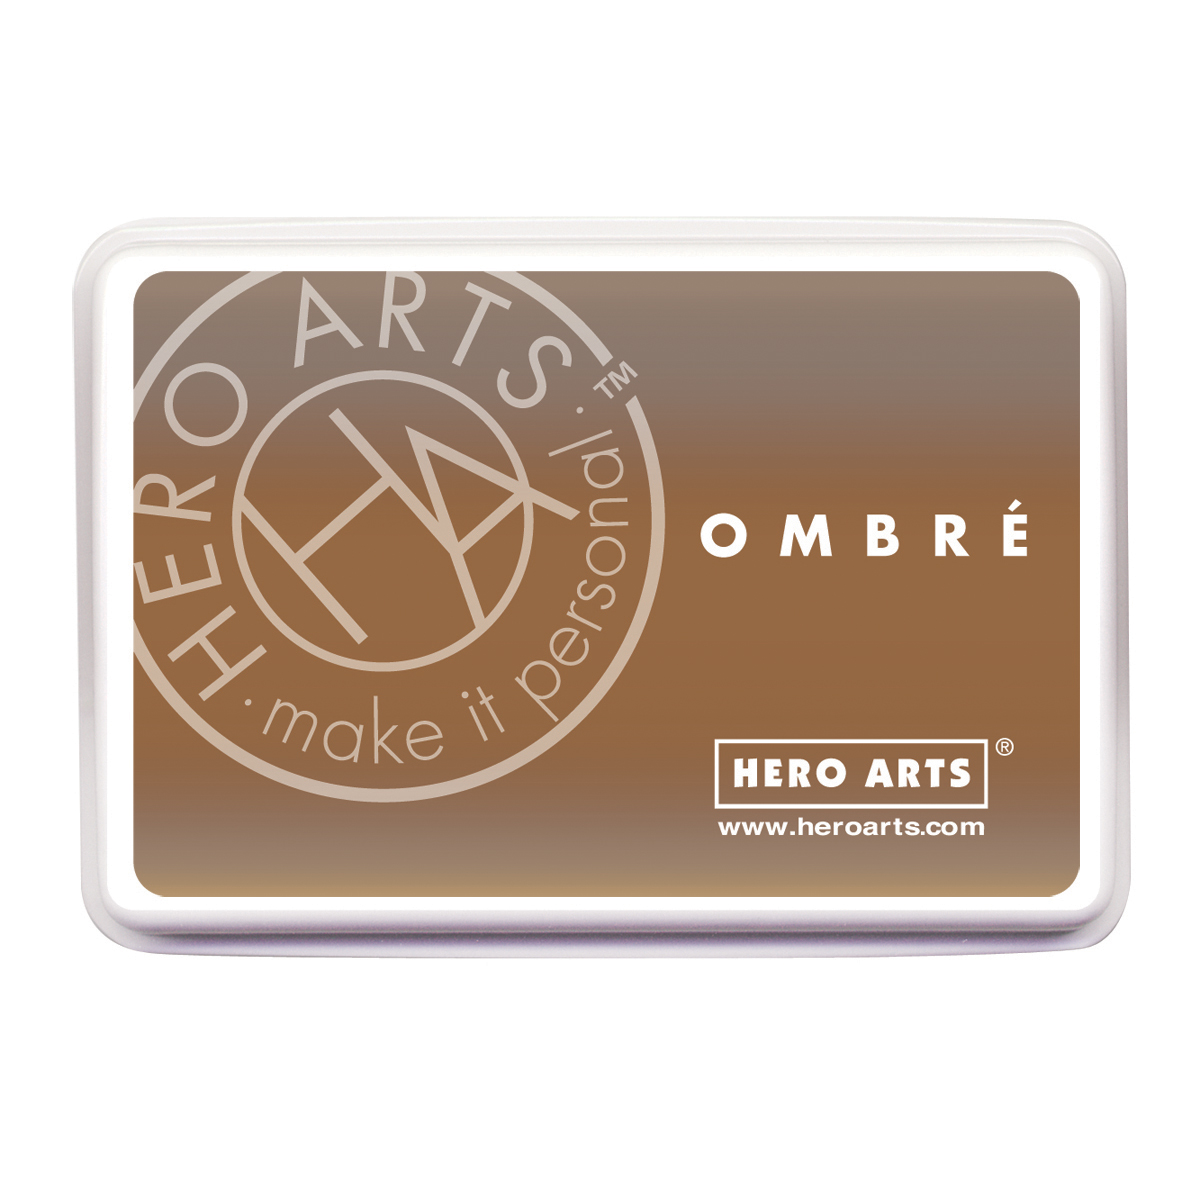 Hero Arts Ombre Ink Pad-Sand To Chocolate Brown - image 1 of 1